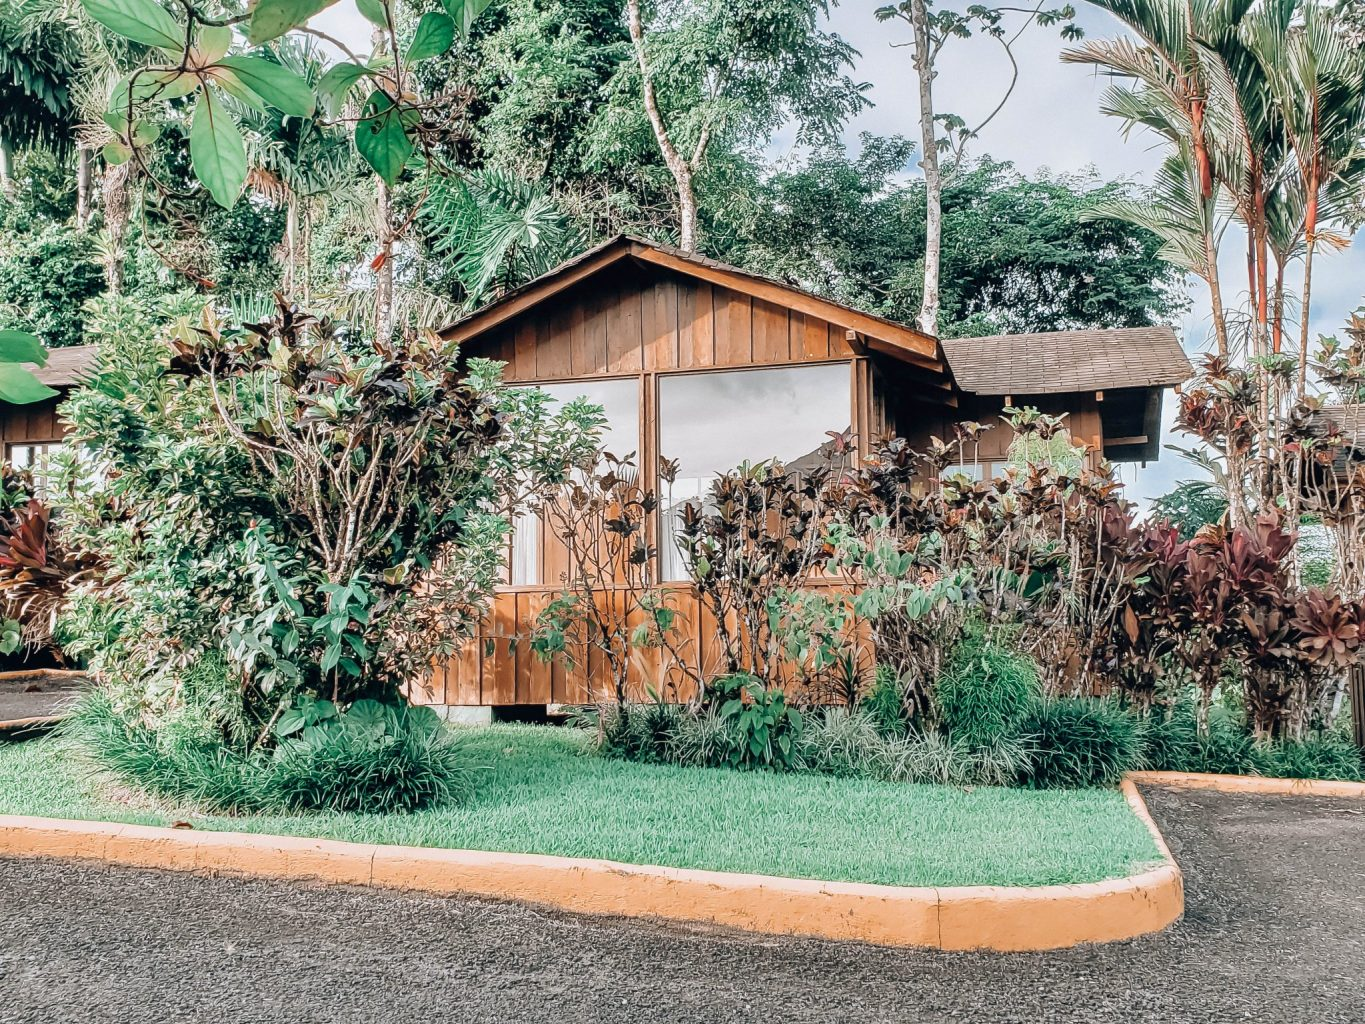 Things to do in Costa Rica with kids include staying in cabins that overlook the Arenal Volcano